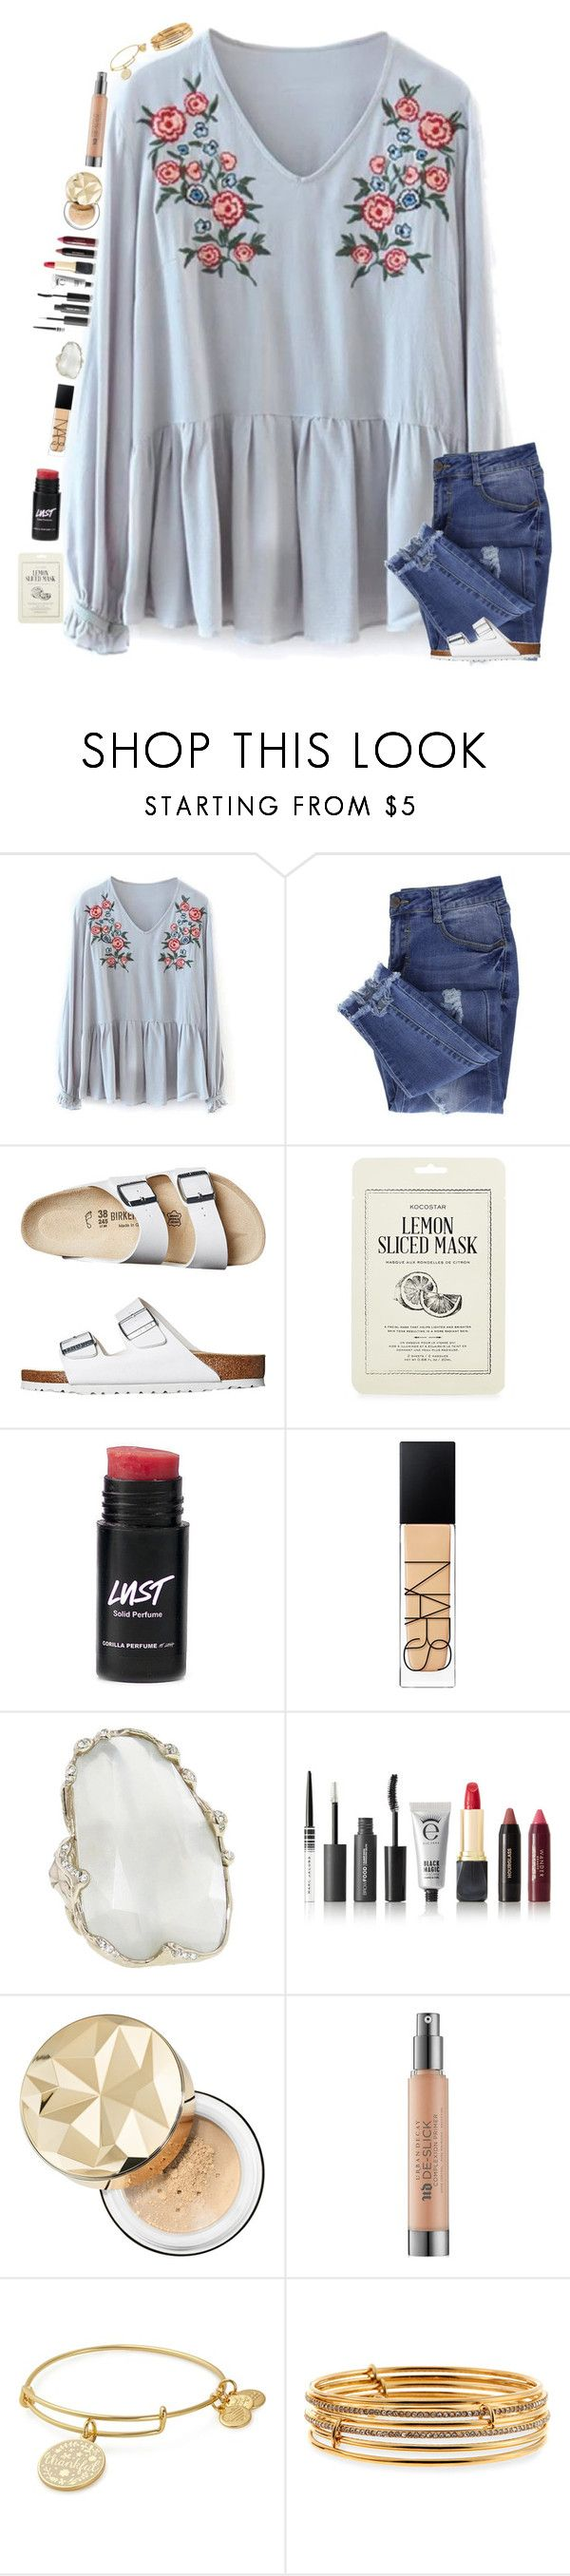 """""""this is so mean and stupid rtd :/"""" by classyandsassyabby ❤ liked on Polyvore featuring Essie, Birkenstock, Kocostar, NARS Cosmetics, Lucifer Vir Honestus, Bare Escentuals, Urban Decay, Alex and Ani and Kate Spade"""